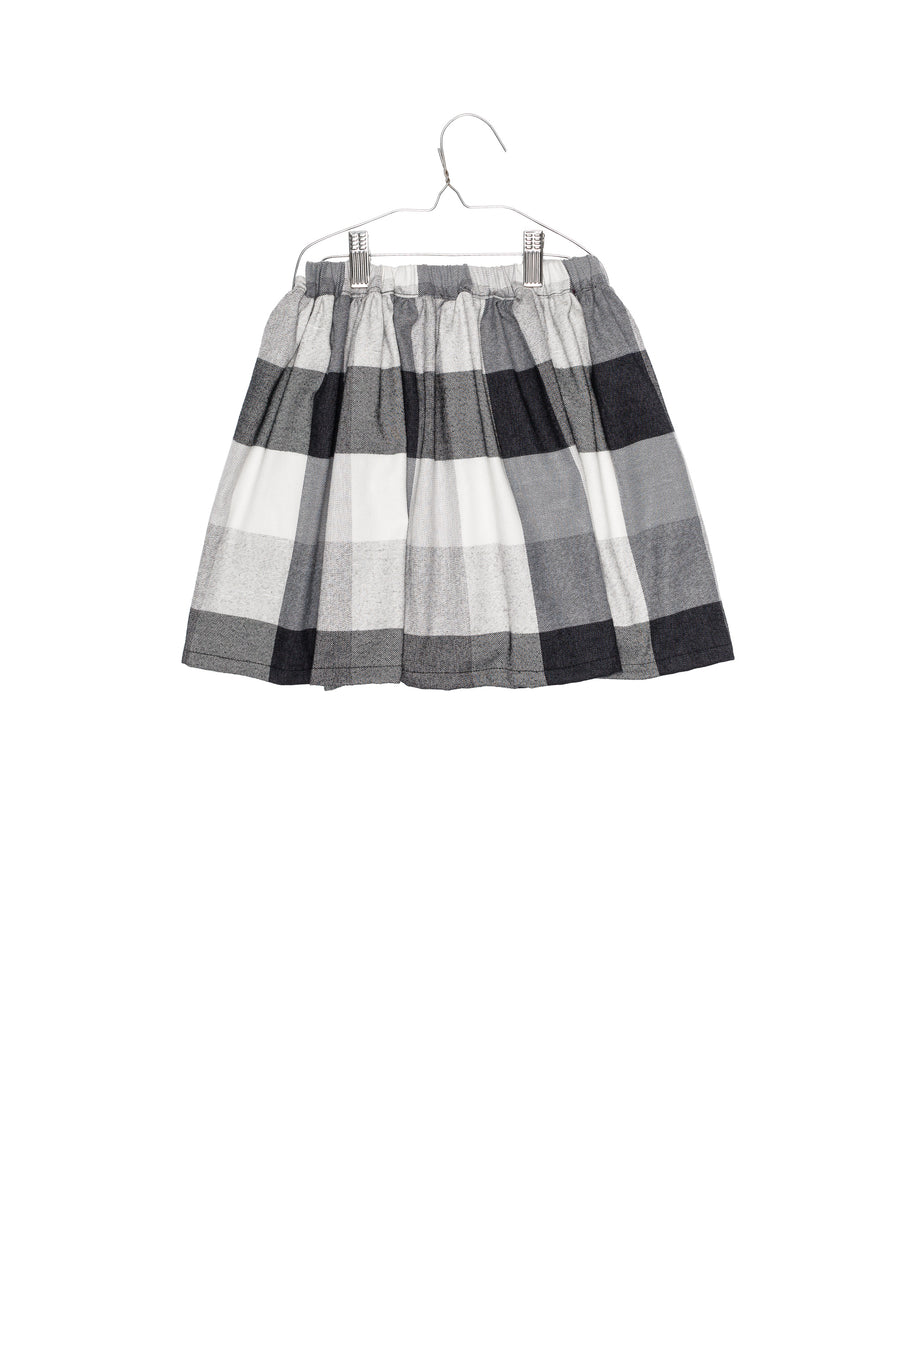 Moira Checked Skirt by Motoreta